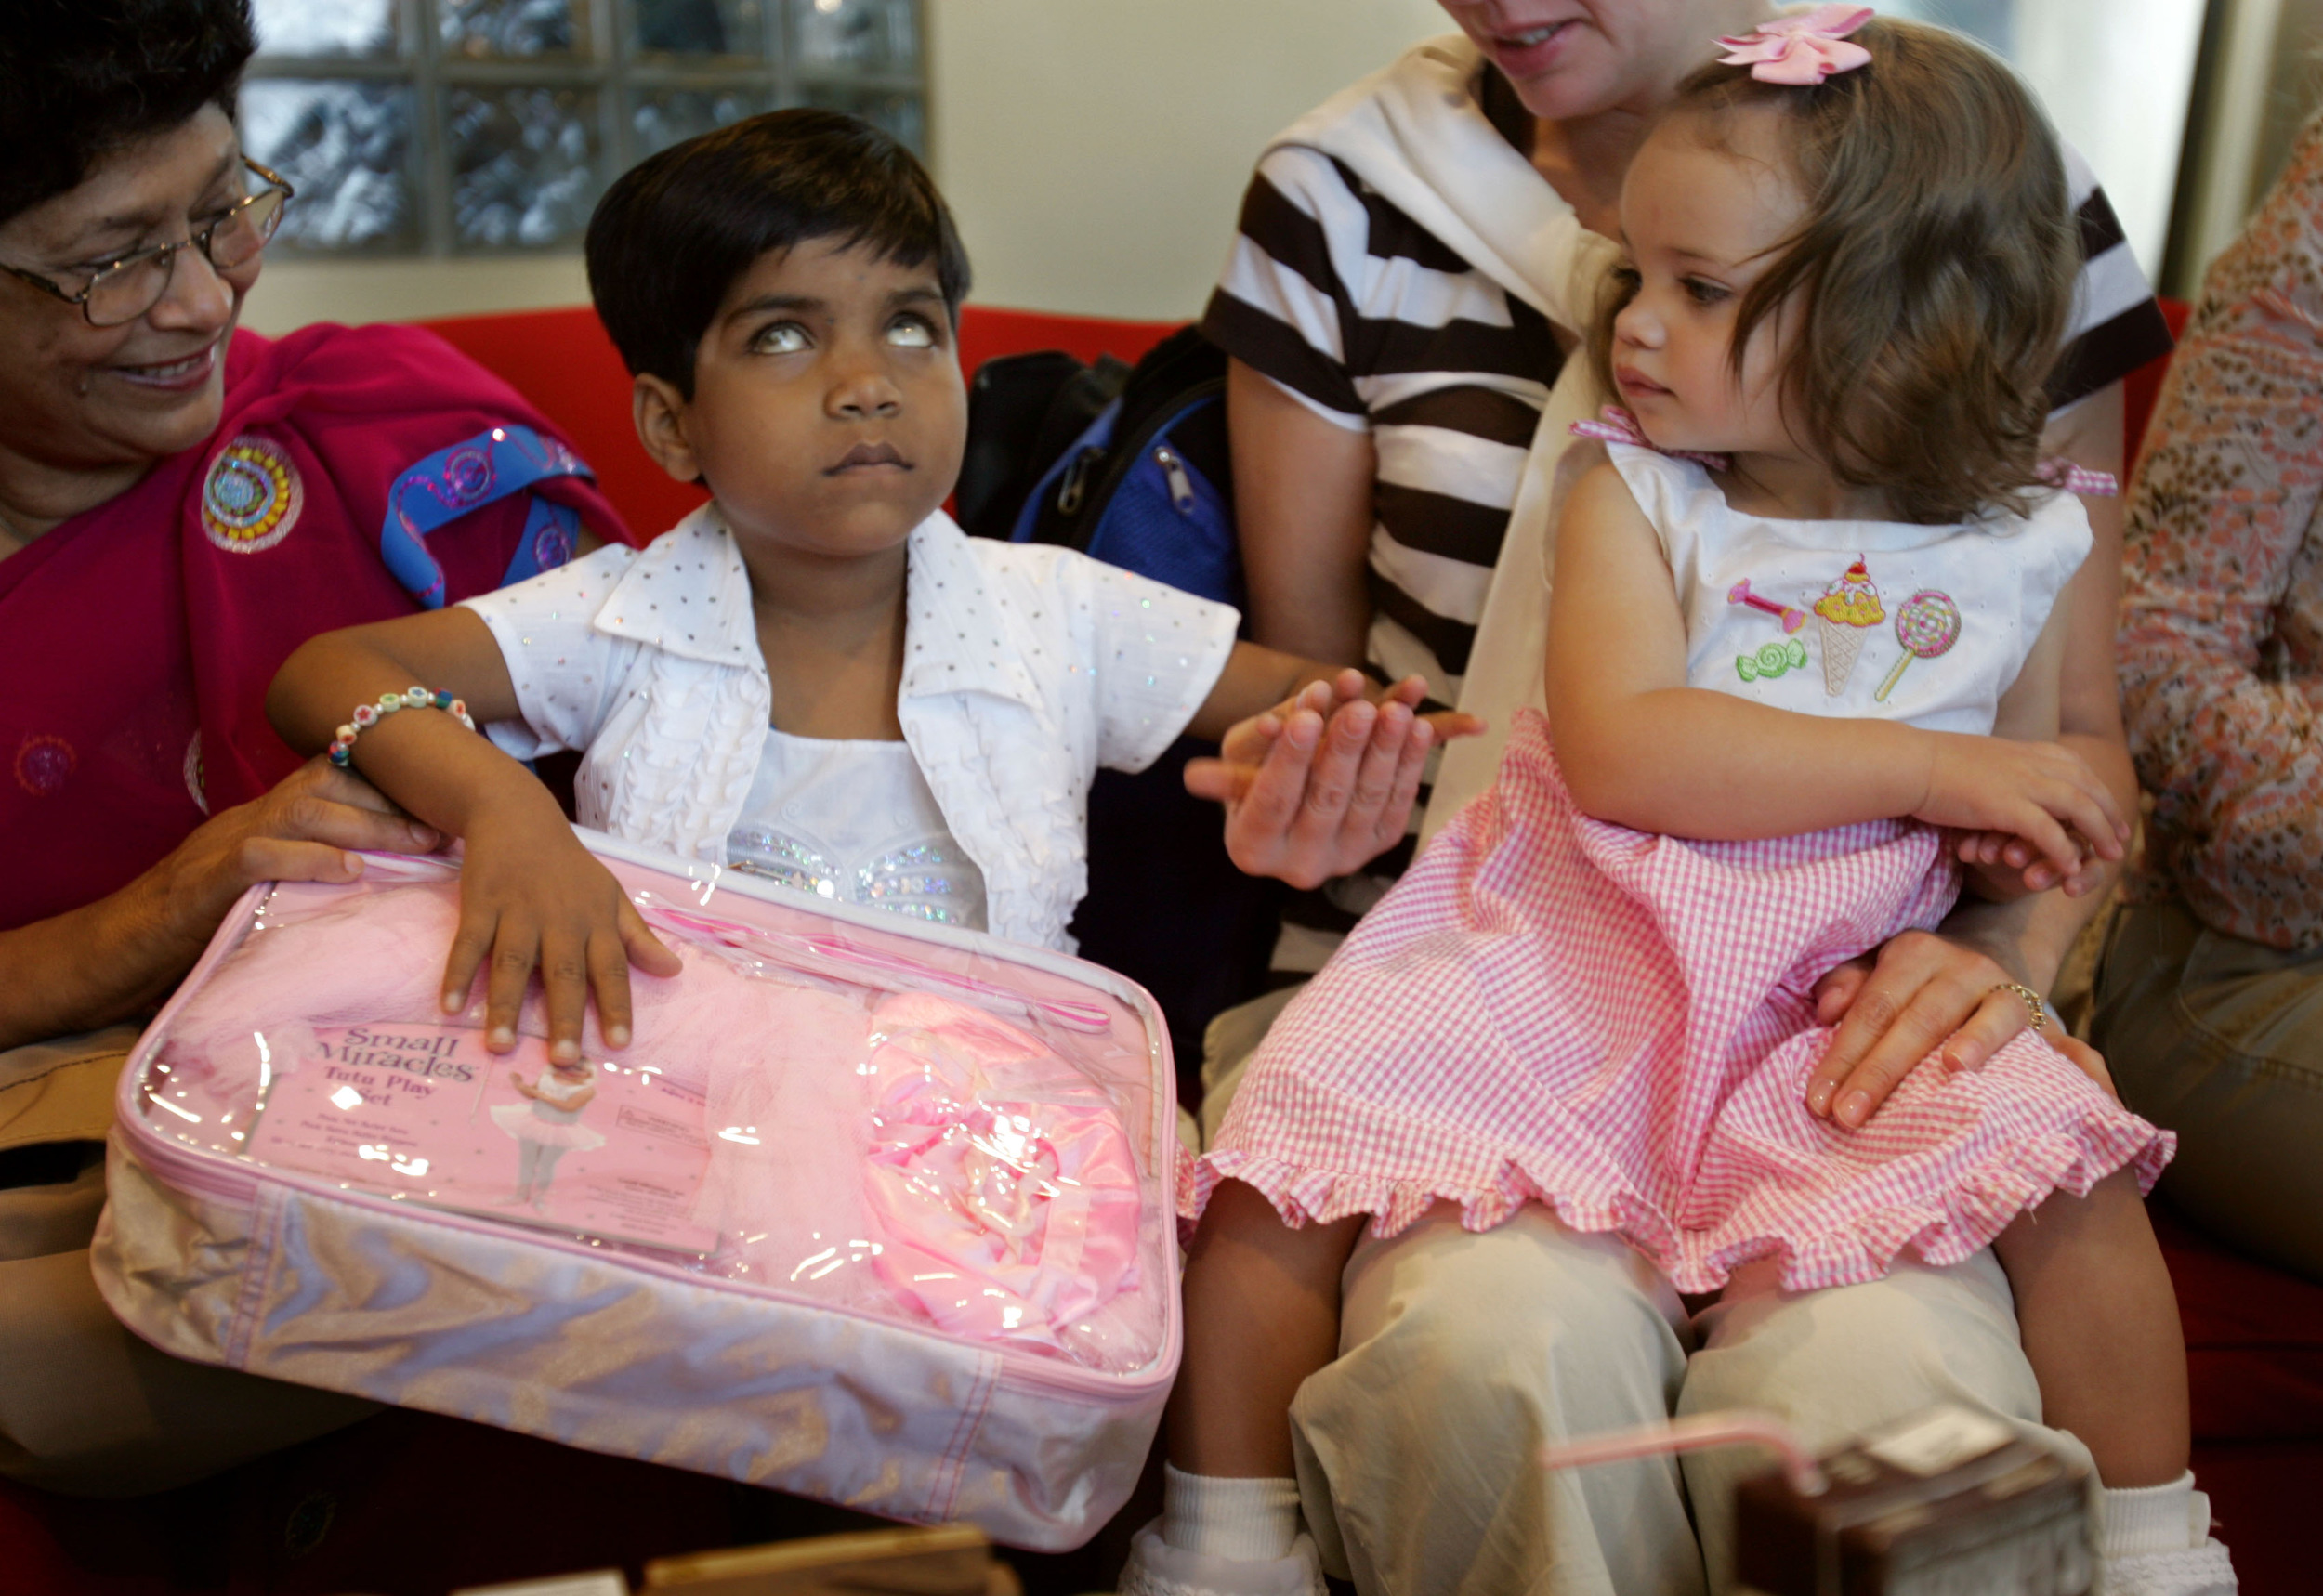 One-year-old Lexi Quillin, reacts shyly to an inquisitive Kajal,  during a party held for Kajal at the Wang Institute Friday, March 30 2007 in Nashville, Tenn.